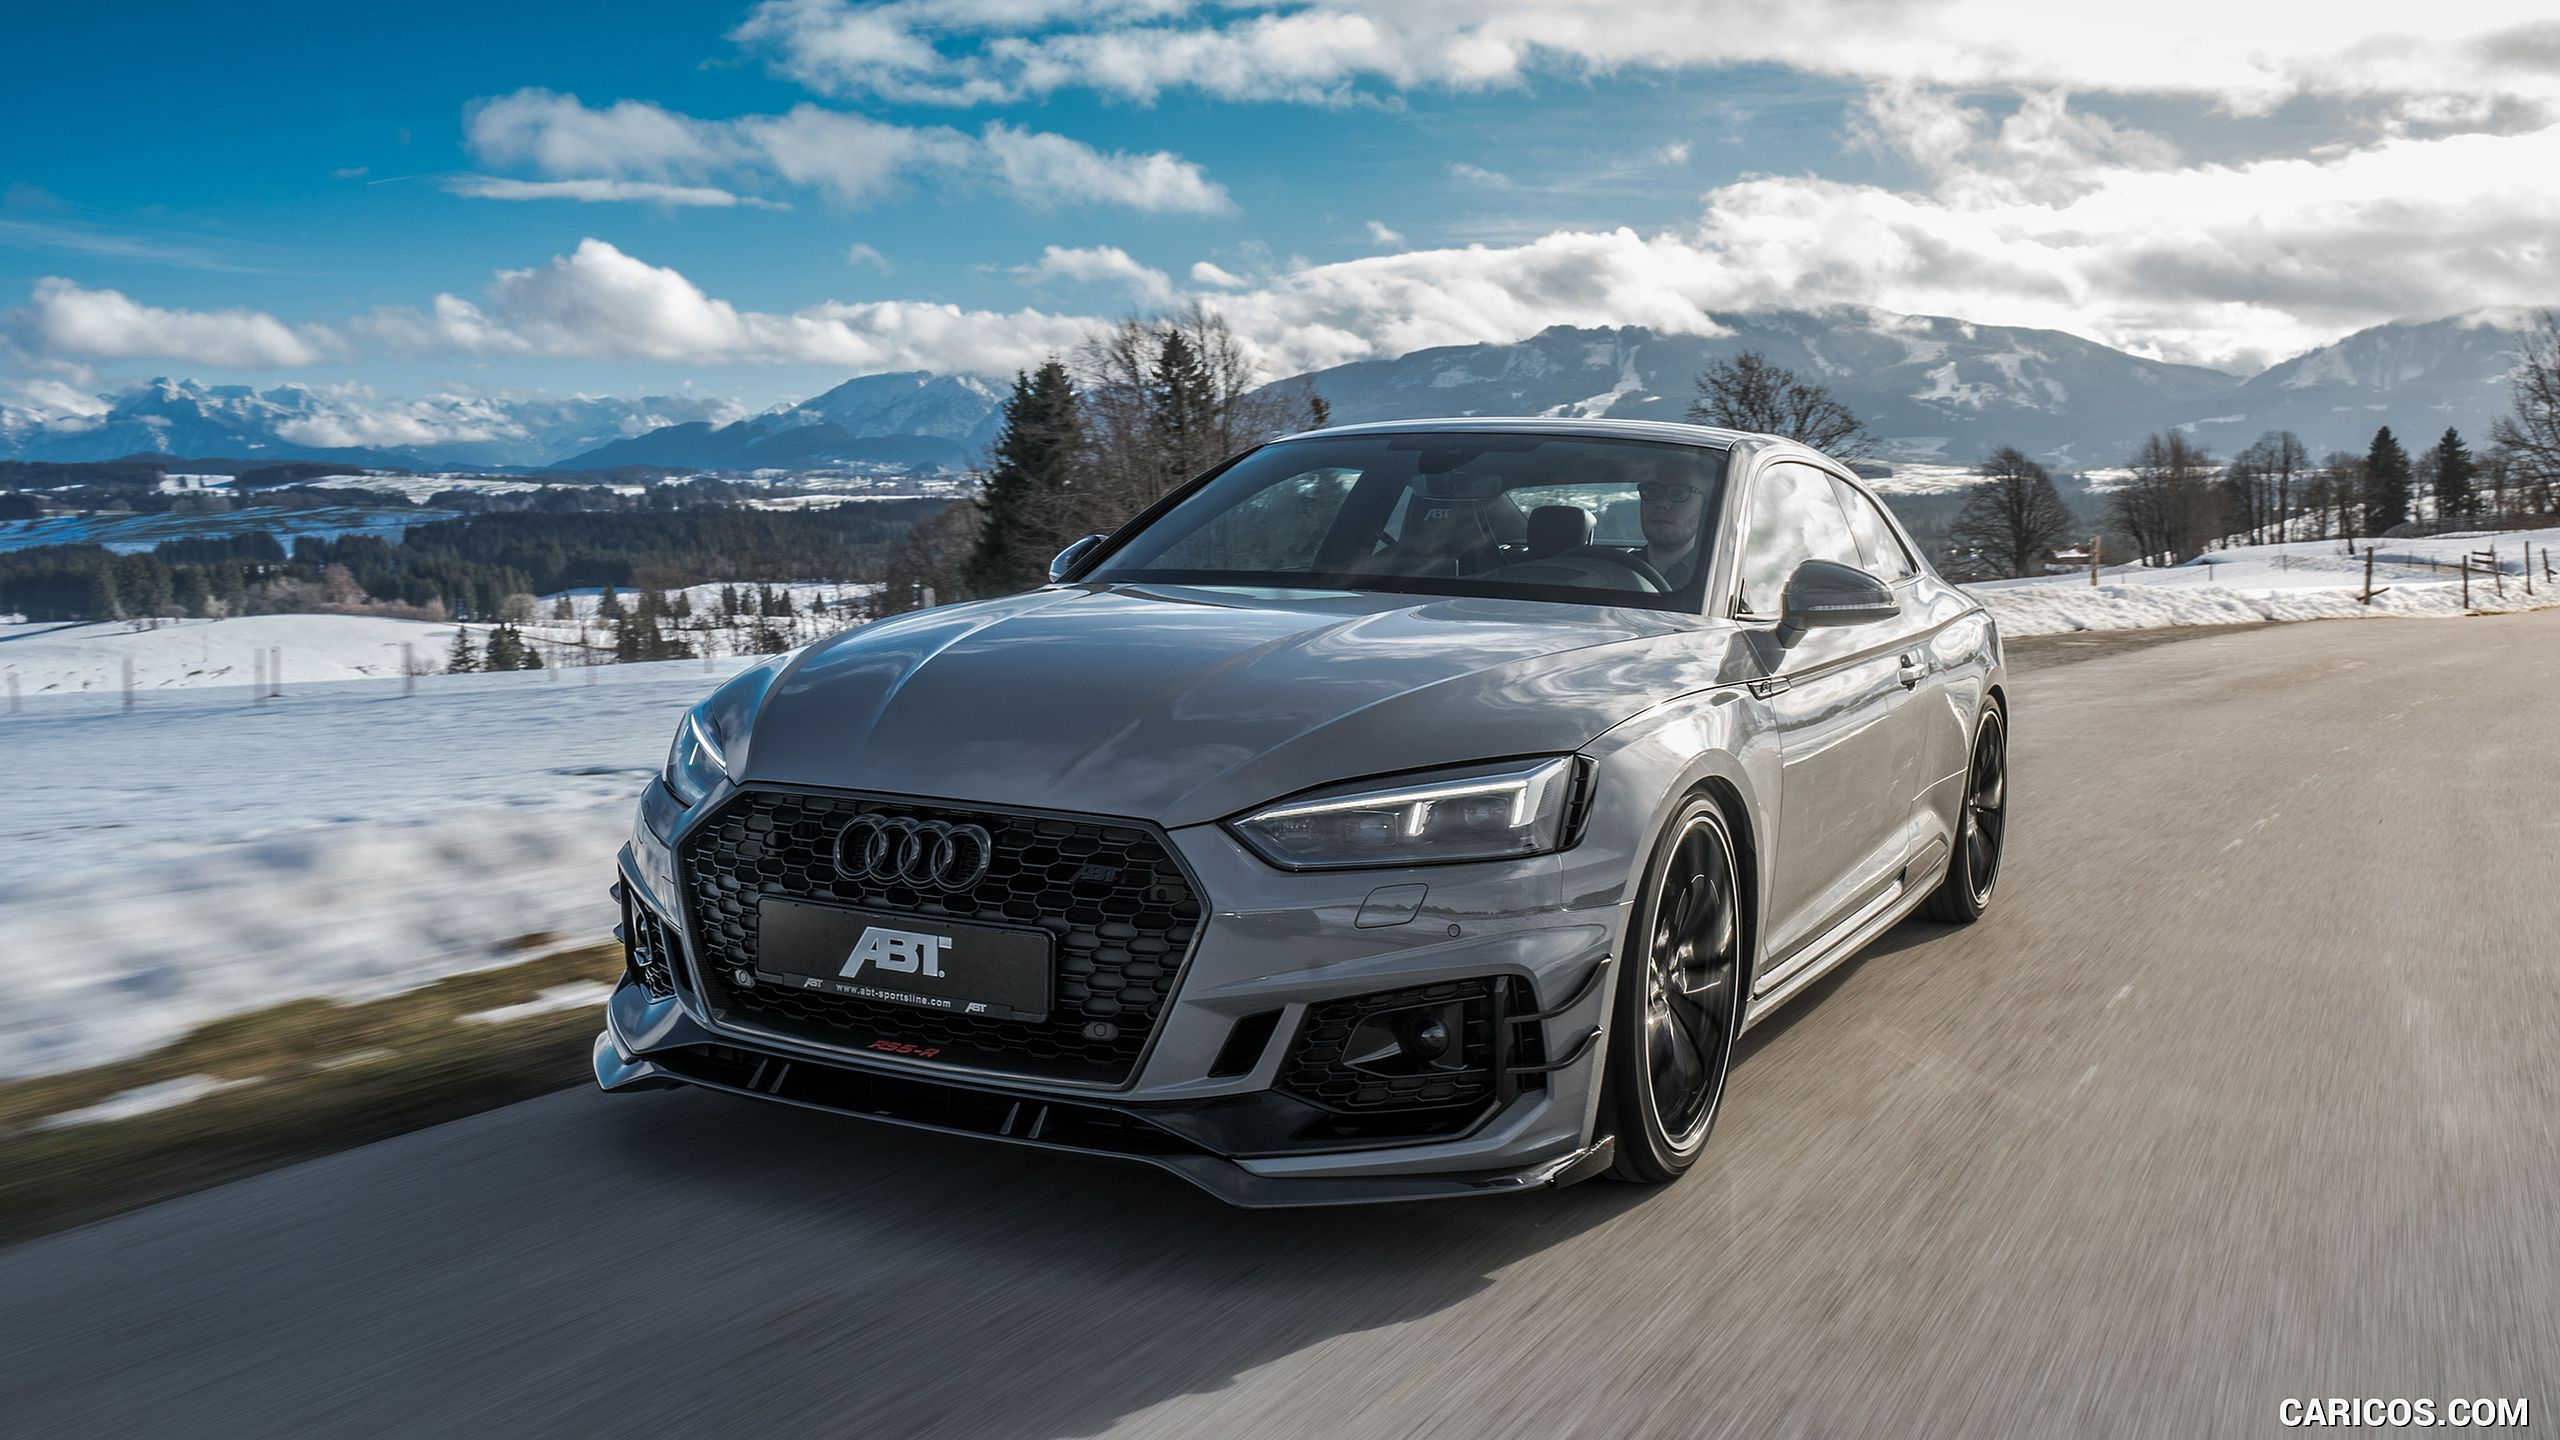 Audi Rs5 Wallpapers Top Free Audi Rs5 Backgrounds Wallpaperaccess